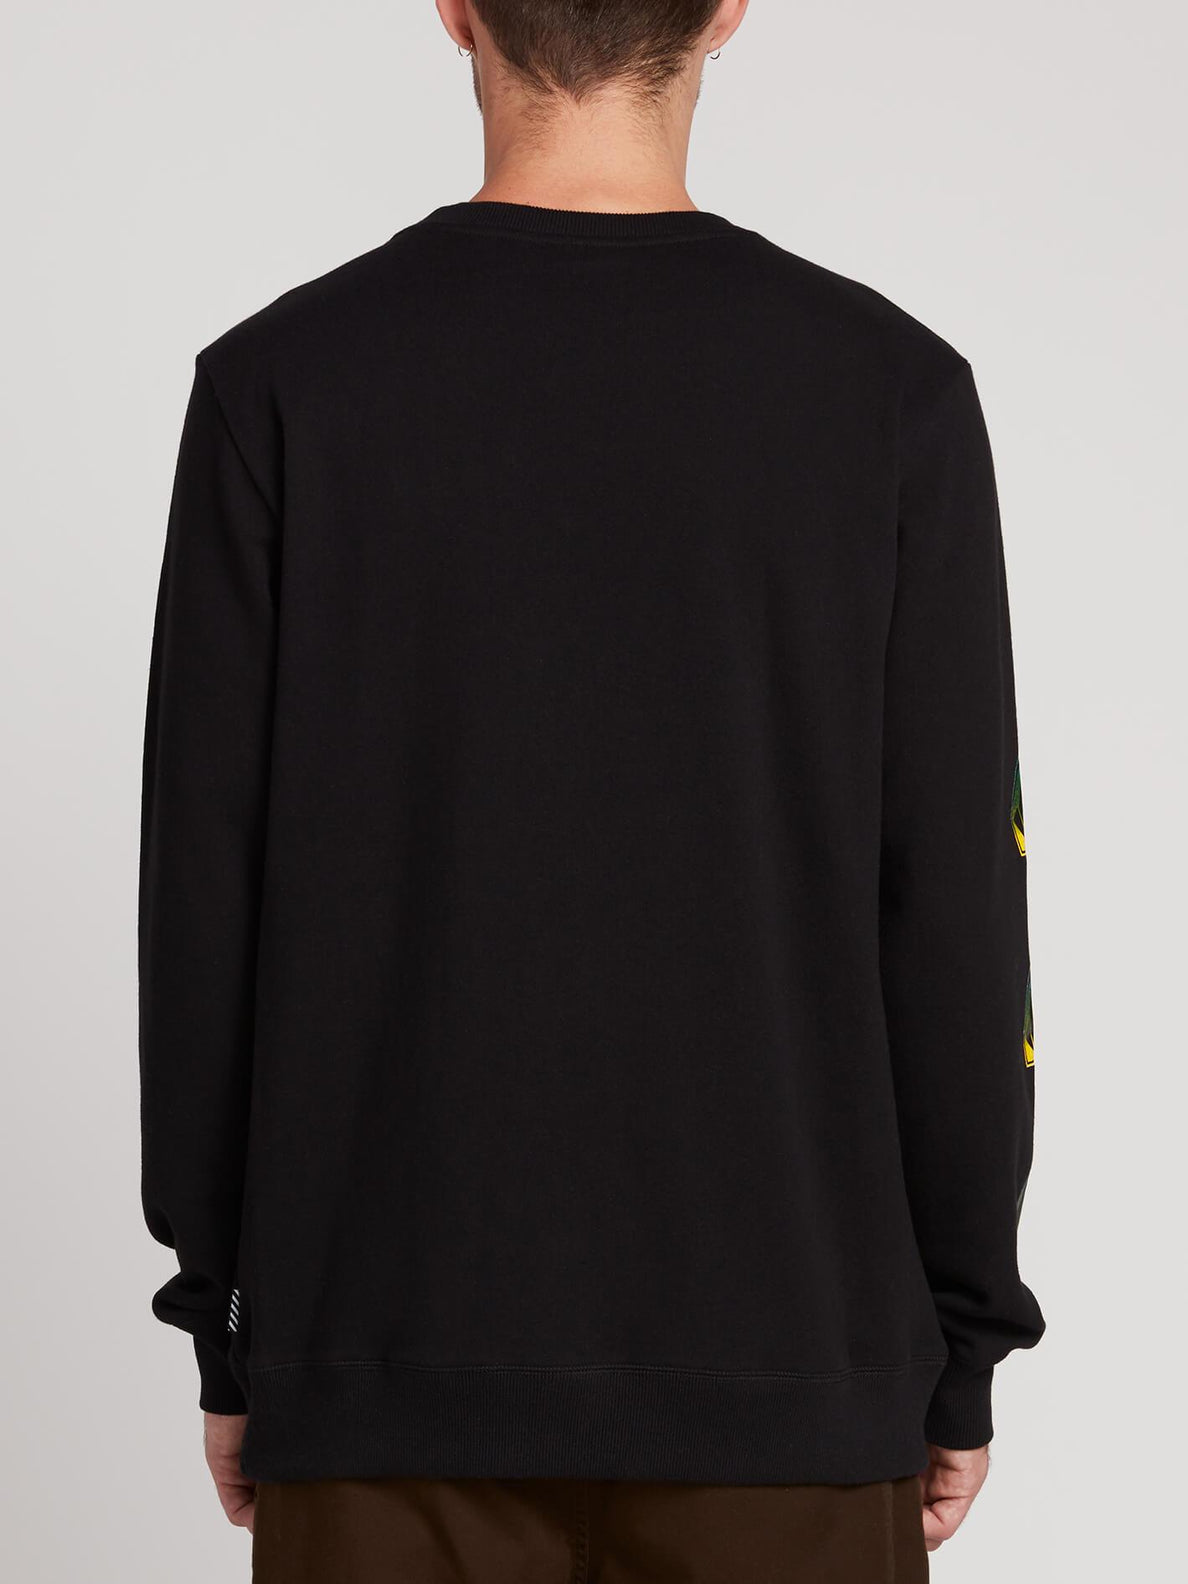 Deadly Stone Sweater - Black (A4631904_BLK) [B]